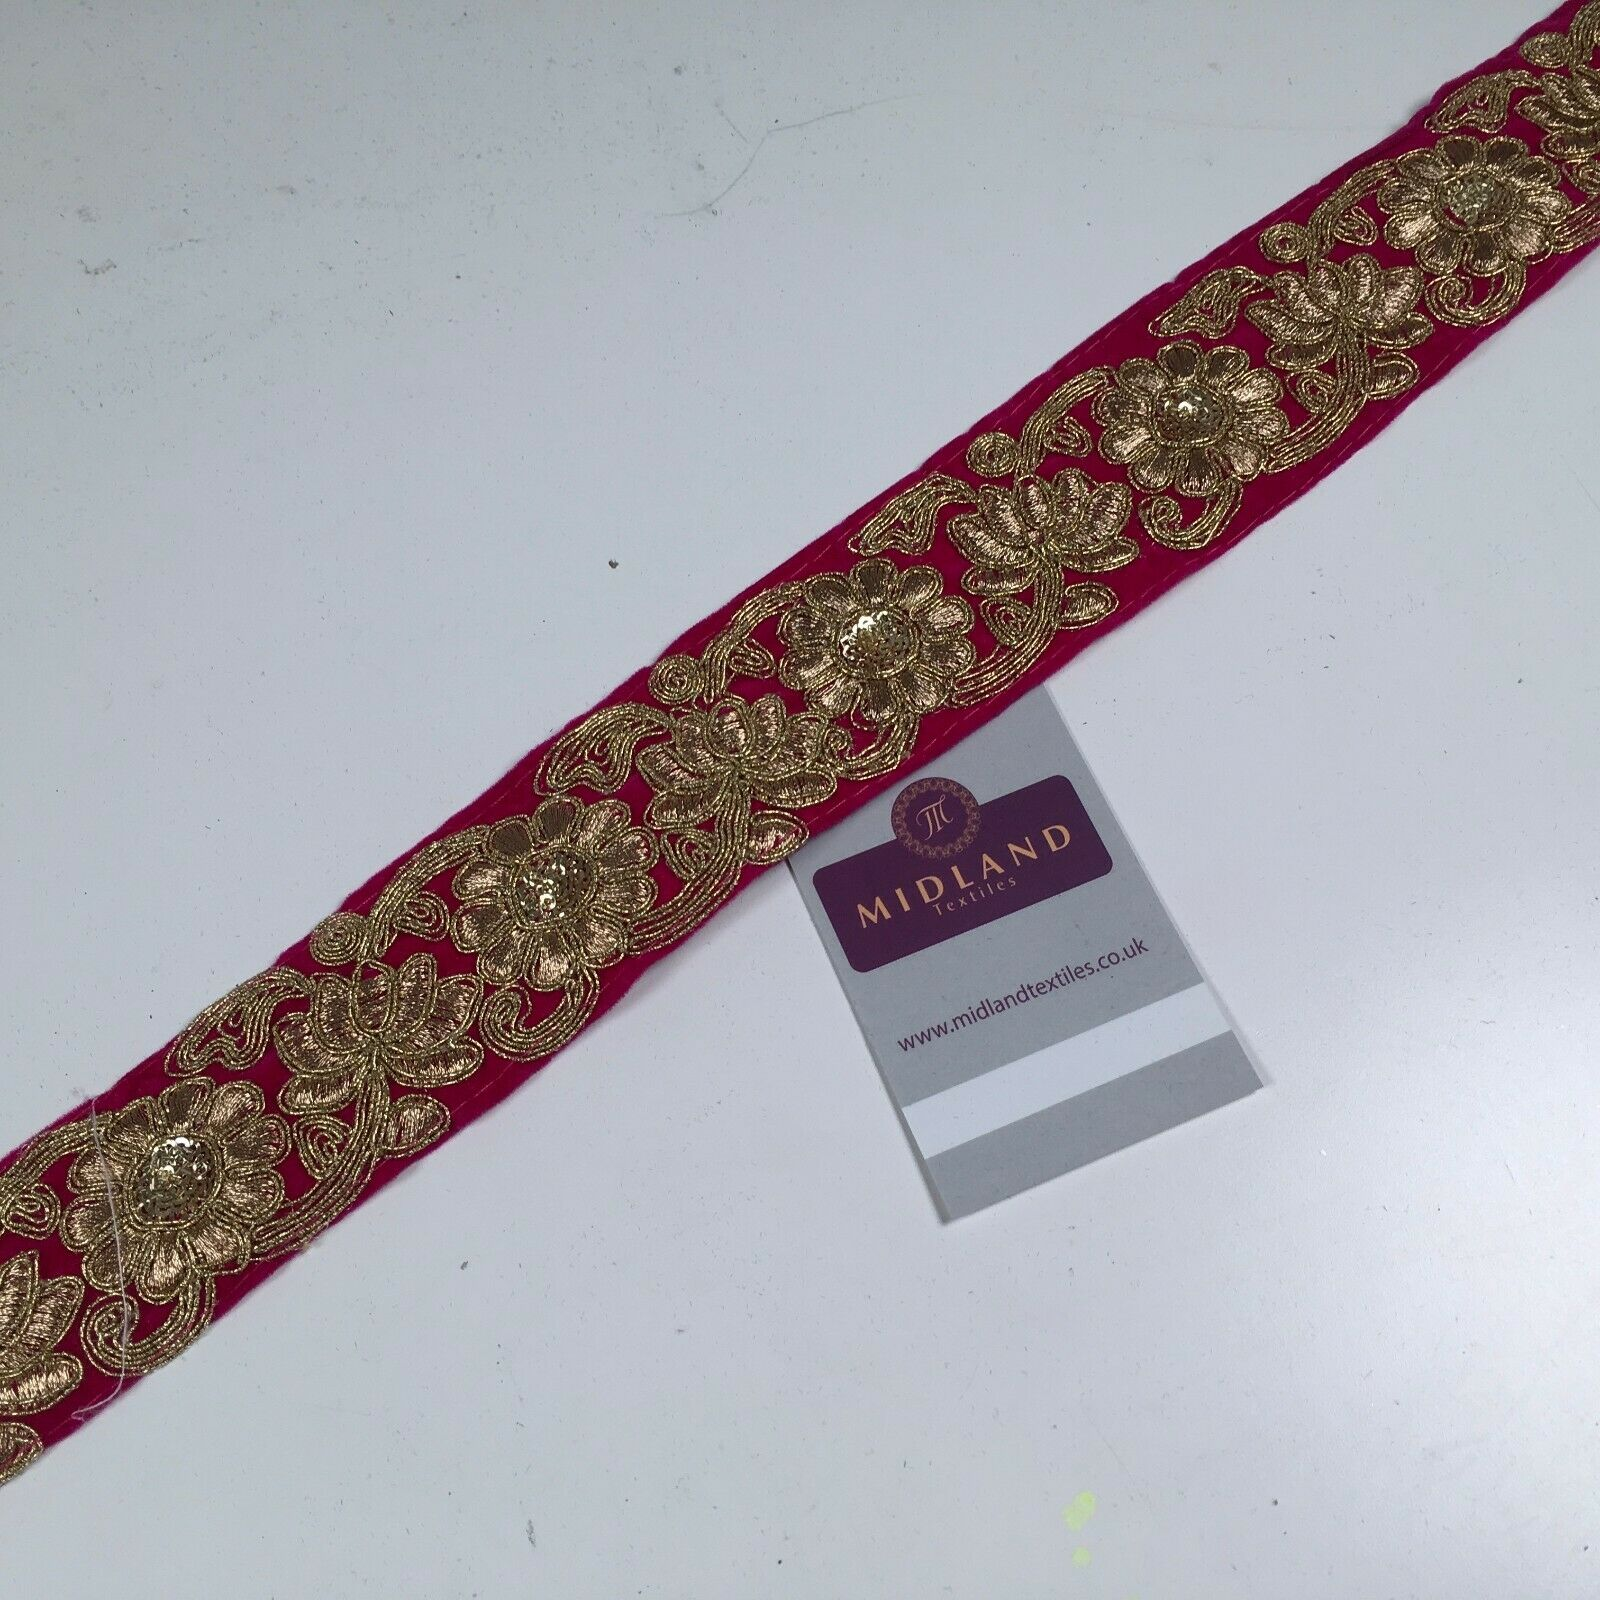 45mm Velvet floral embroidered border sari edging M1343